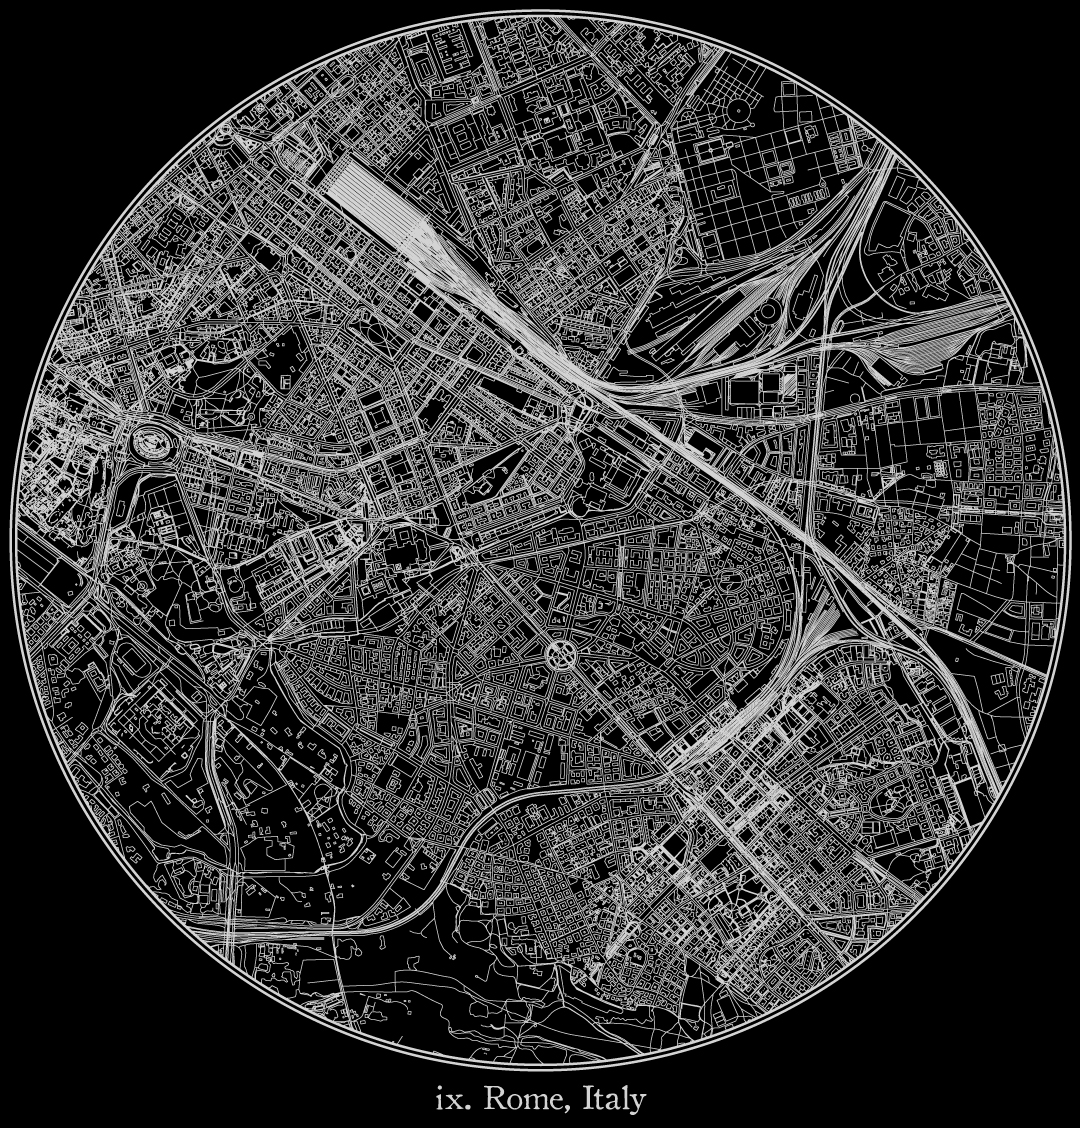 City map illustration of Rome created using Maperitive, OpenStreetMap and Adobe Illustrator.